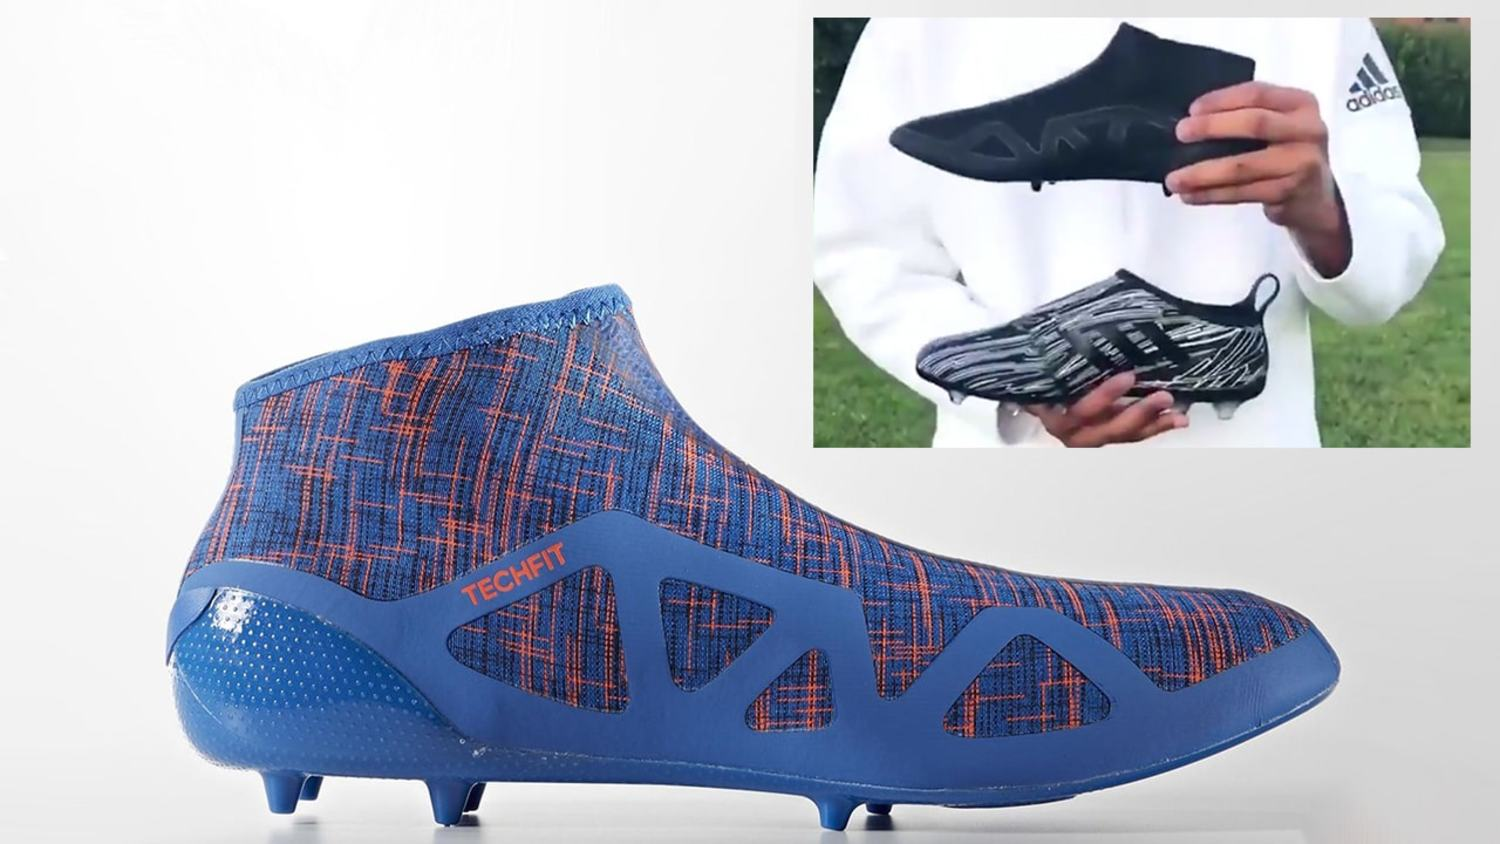 Adidas Release Incredible Customisable 'Glitch' Boots